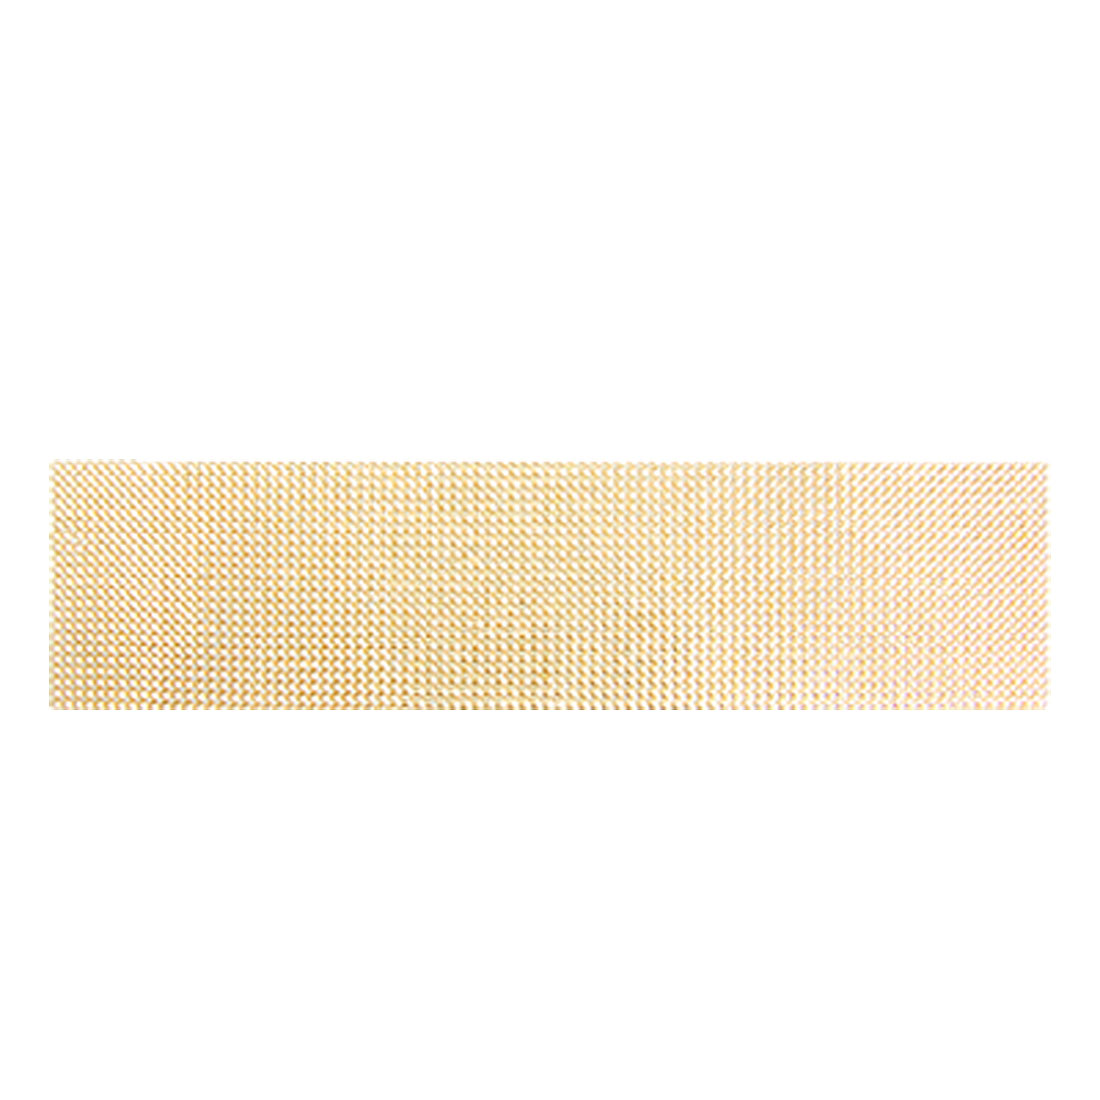 Brass Tone 4mm Diameter Plastic Crystal Sticker Sheet Decor for Car